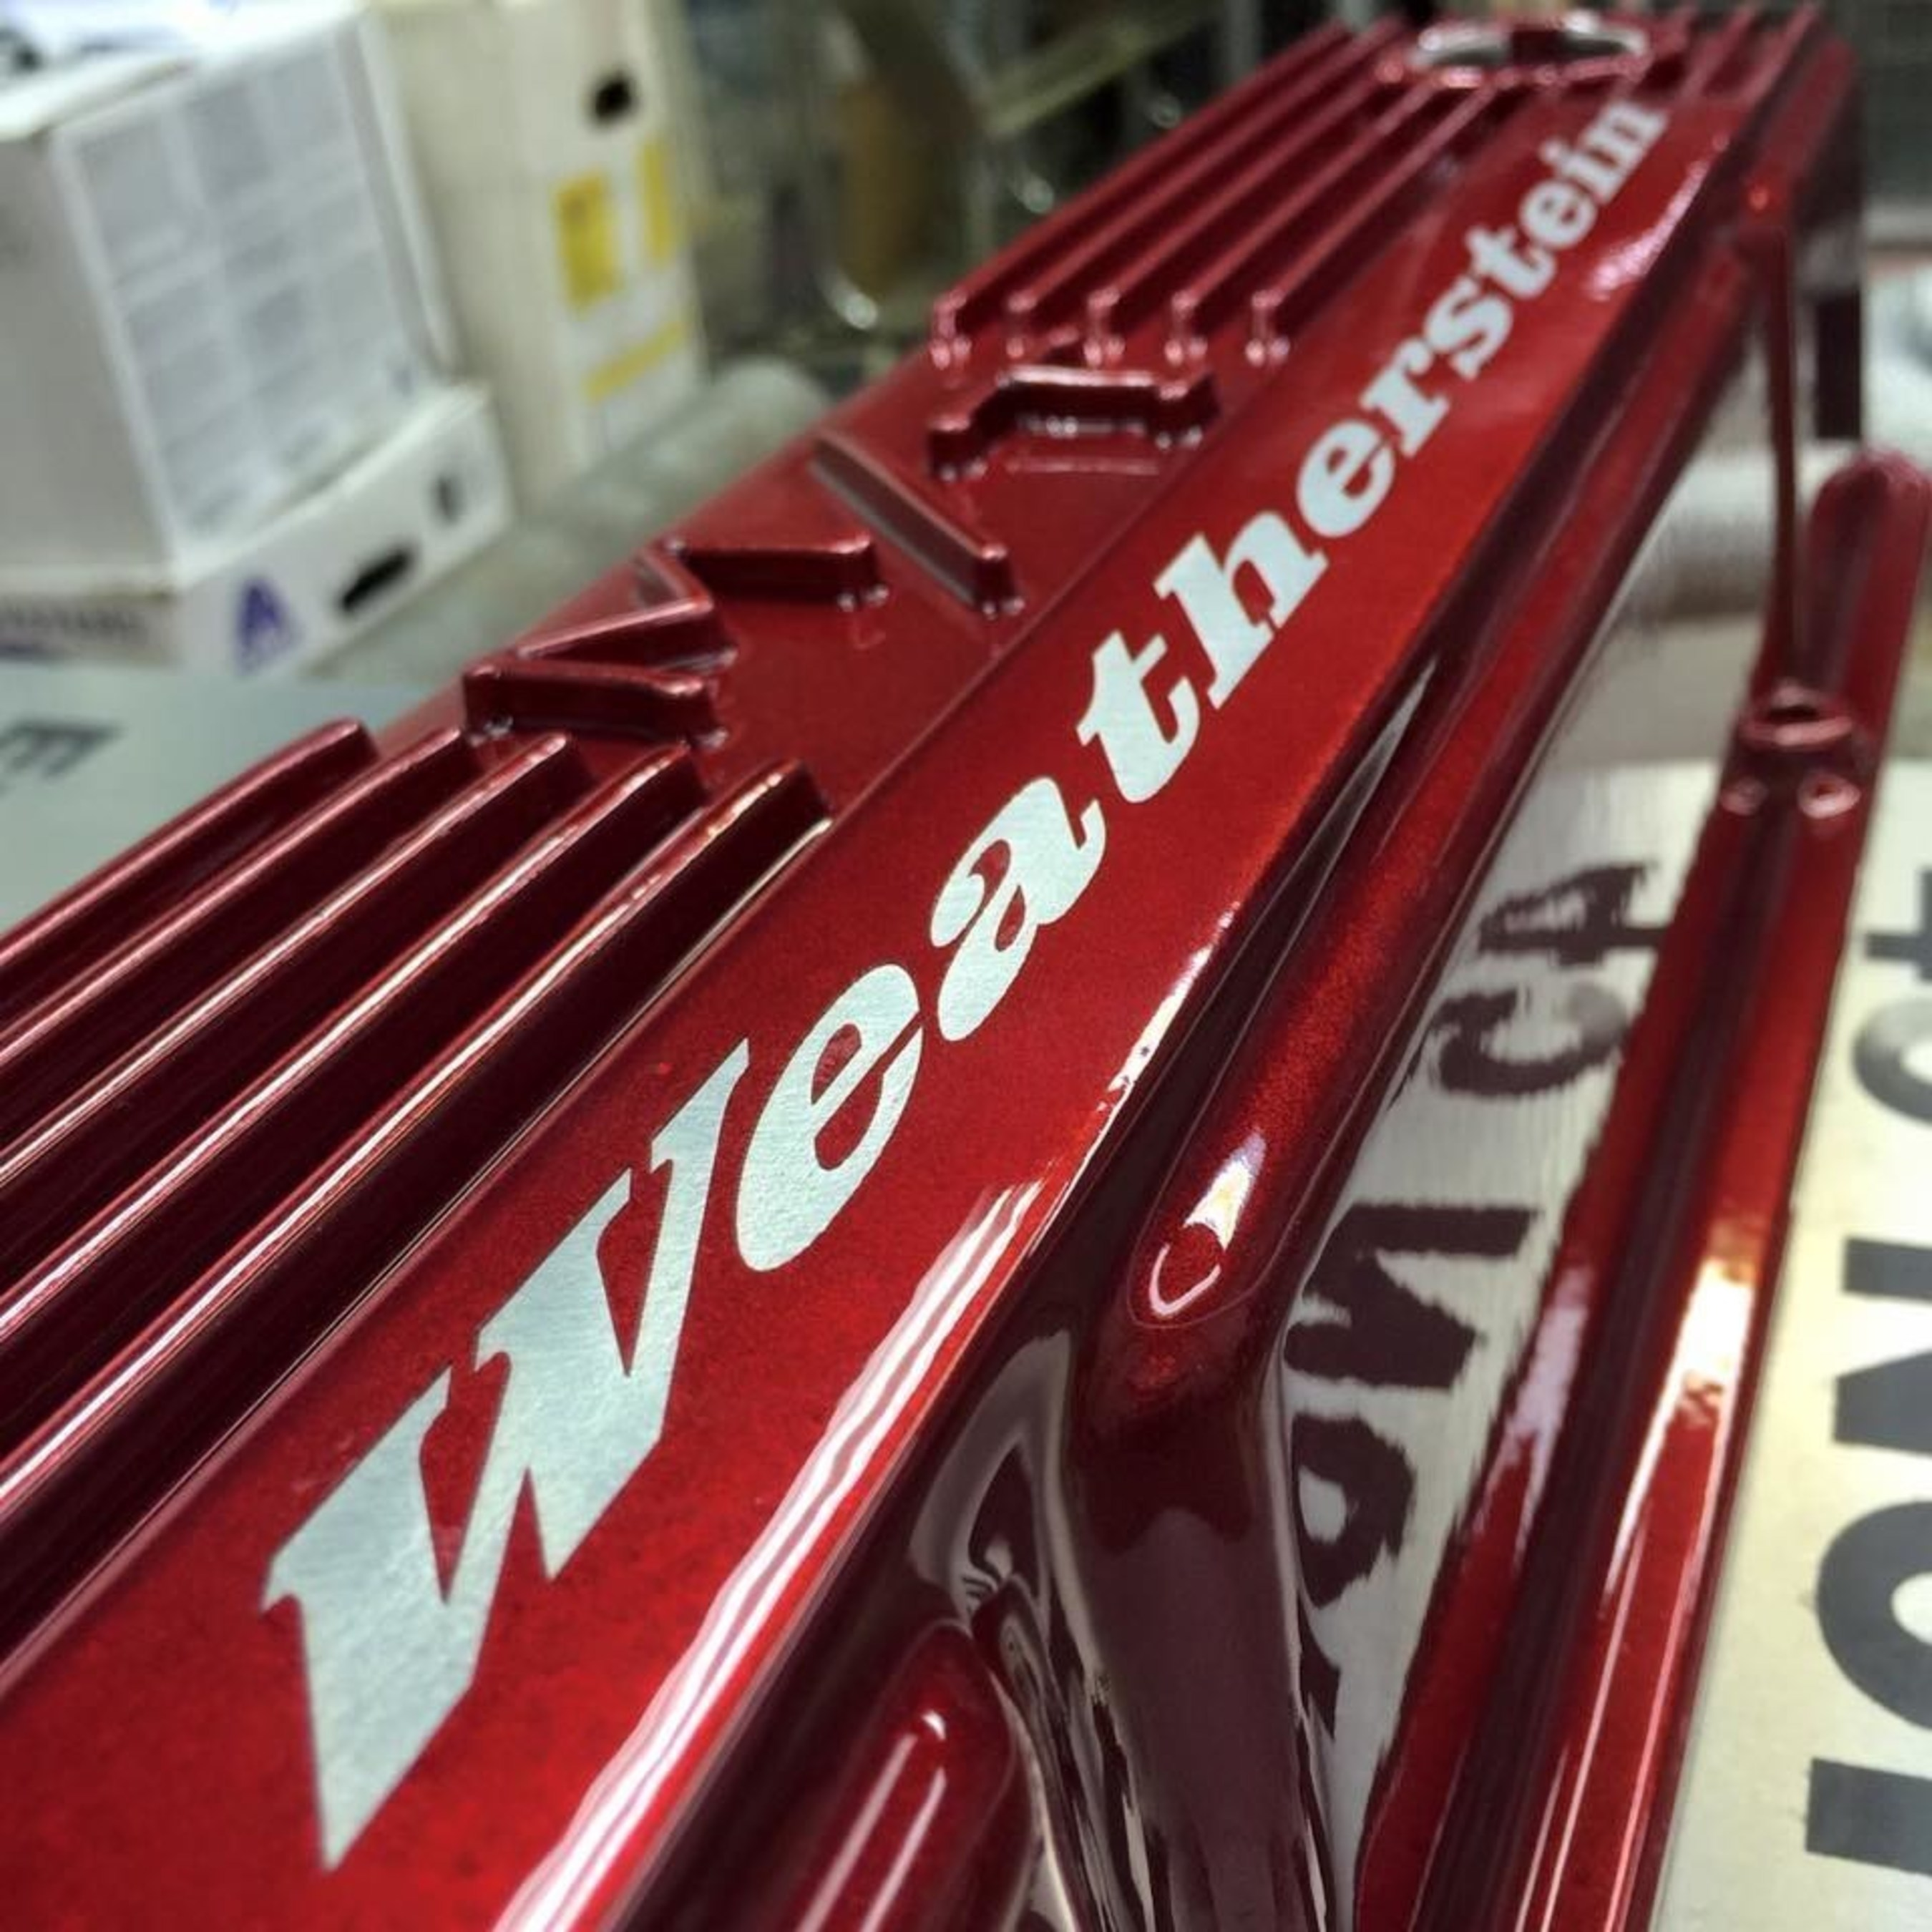 AP LAZER engraved a customers name on their candy red valve cover - photo courtesy of Powder Coat Finishes, LLC